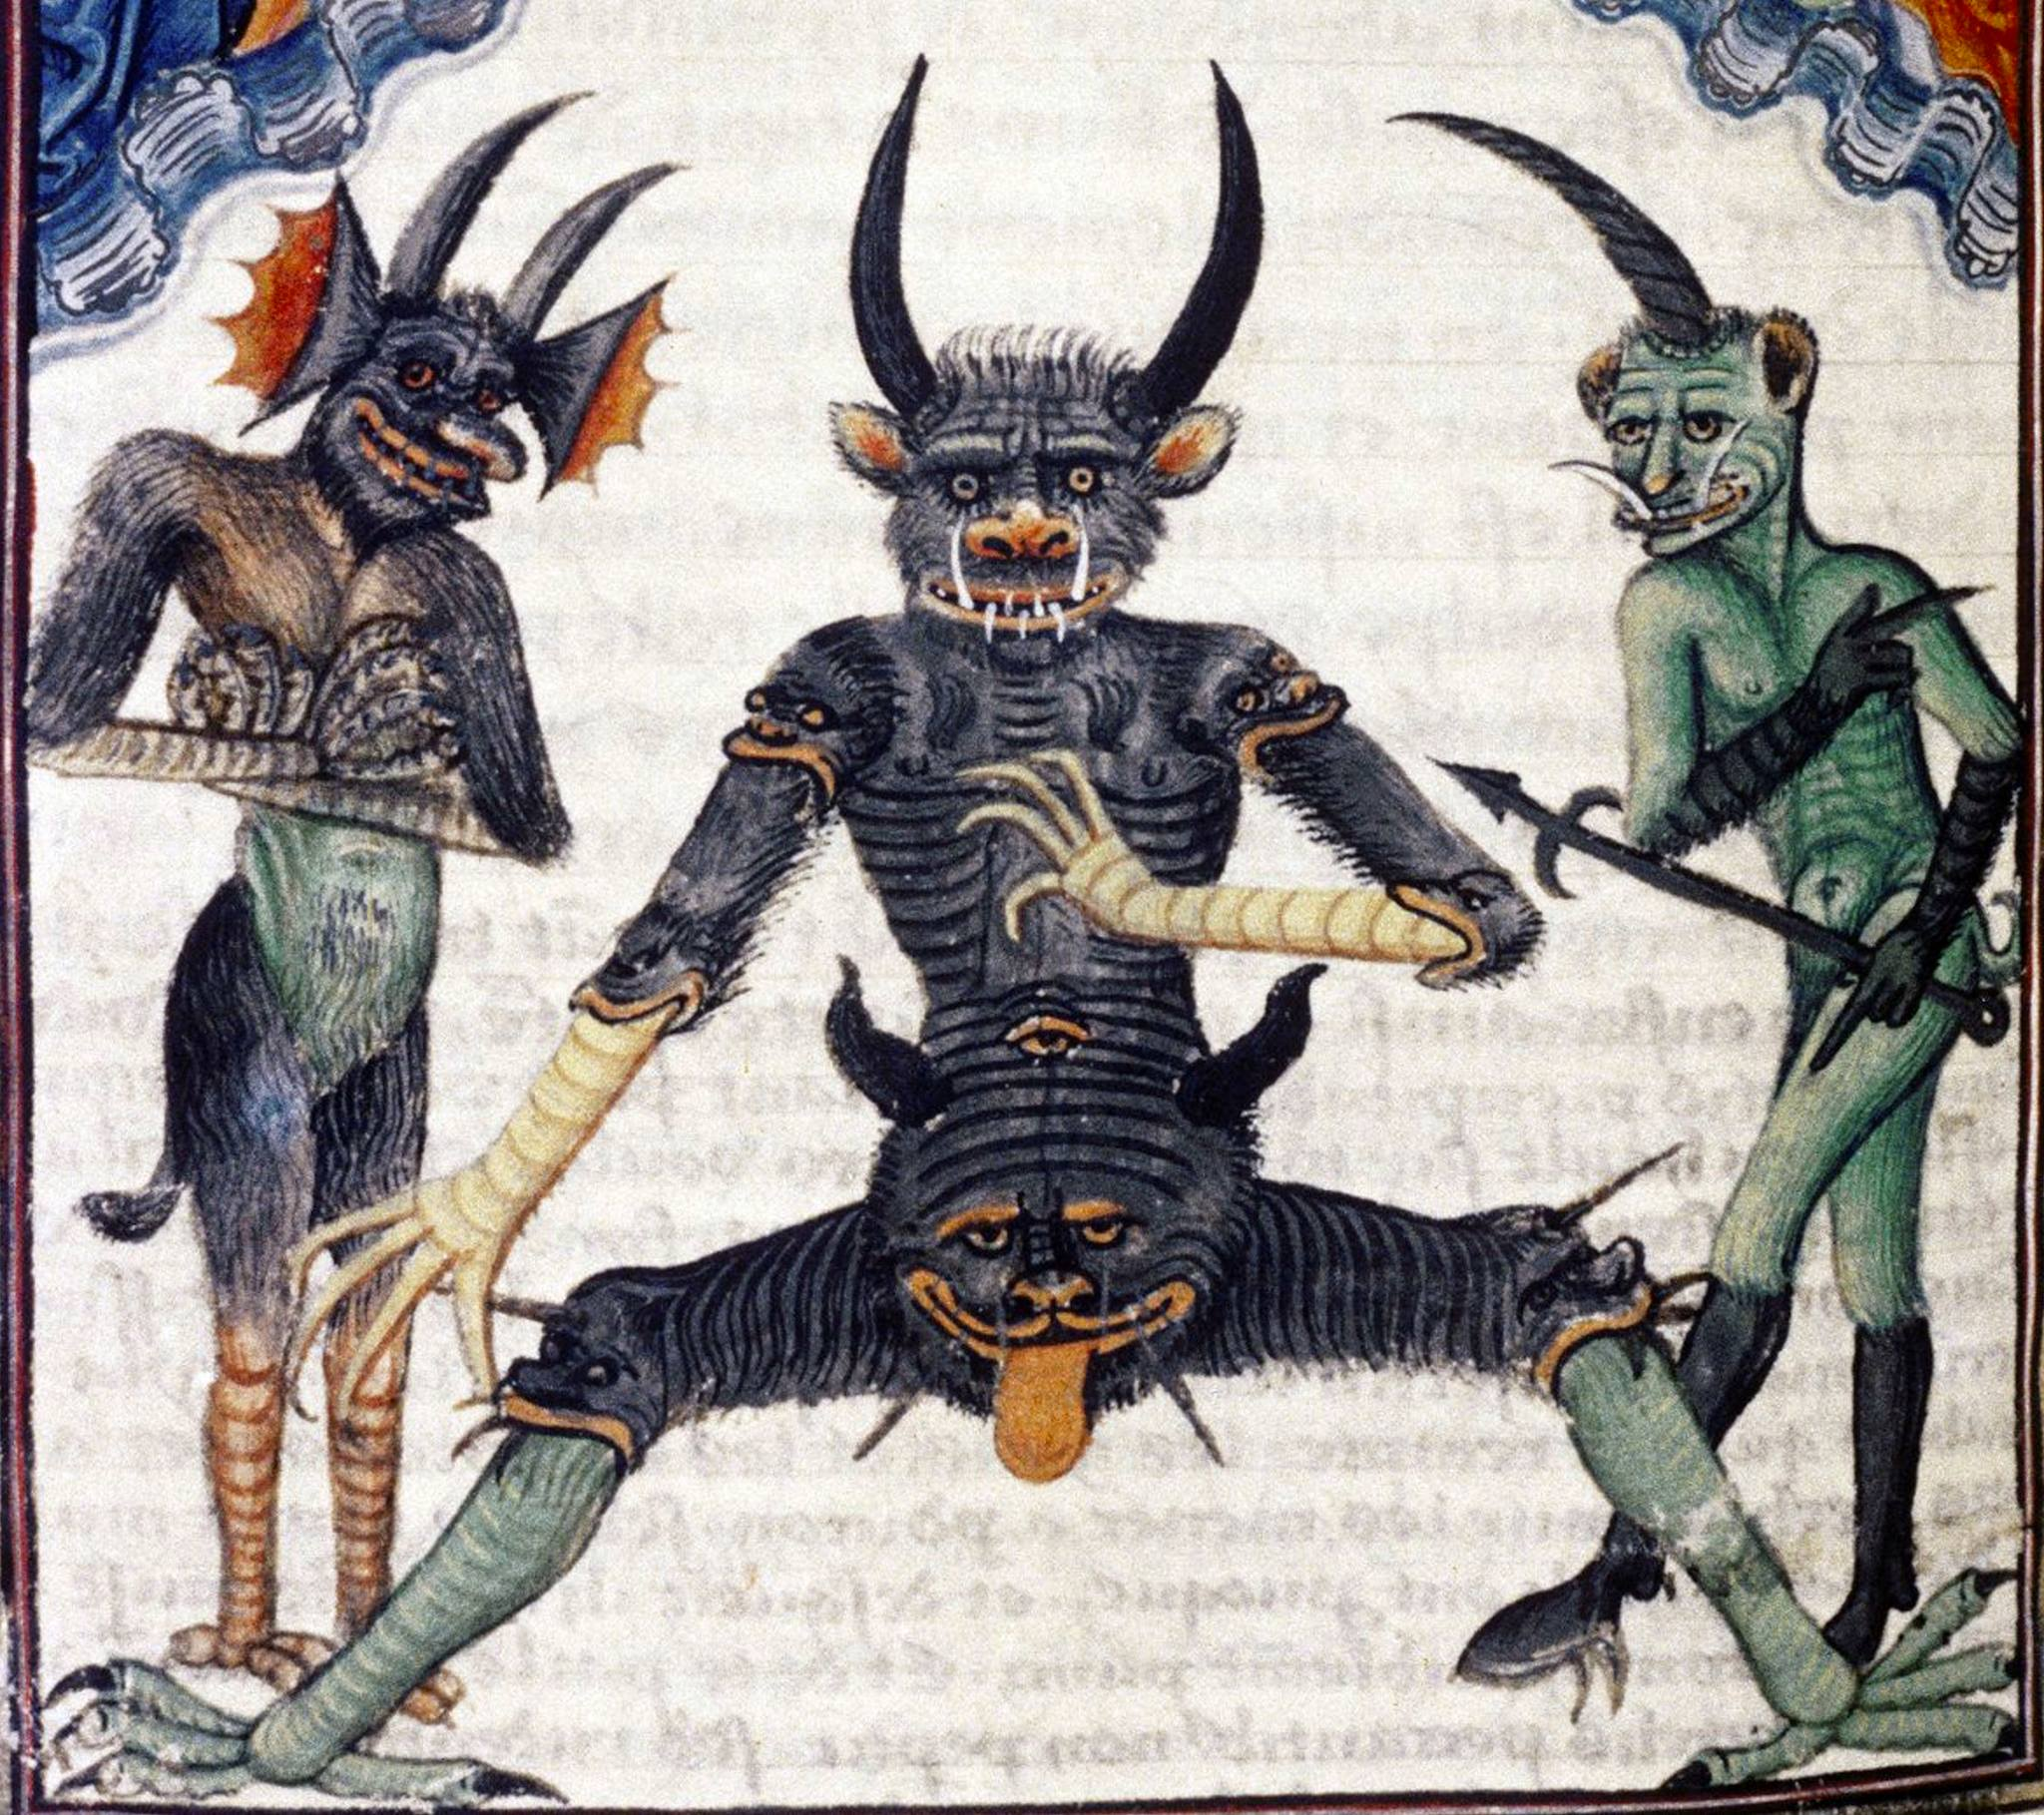 """Erik Wade Twitterren: """"Mini-thread: Why do medieval devils have faces on  their groins/bottoms/knees? Well, Christians saw the body as reflecting the  proper order of the universe: up/right/front is good, down/left/back is bad."""